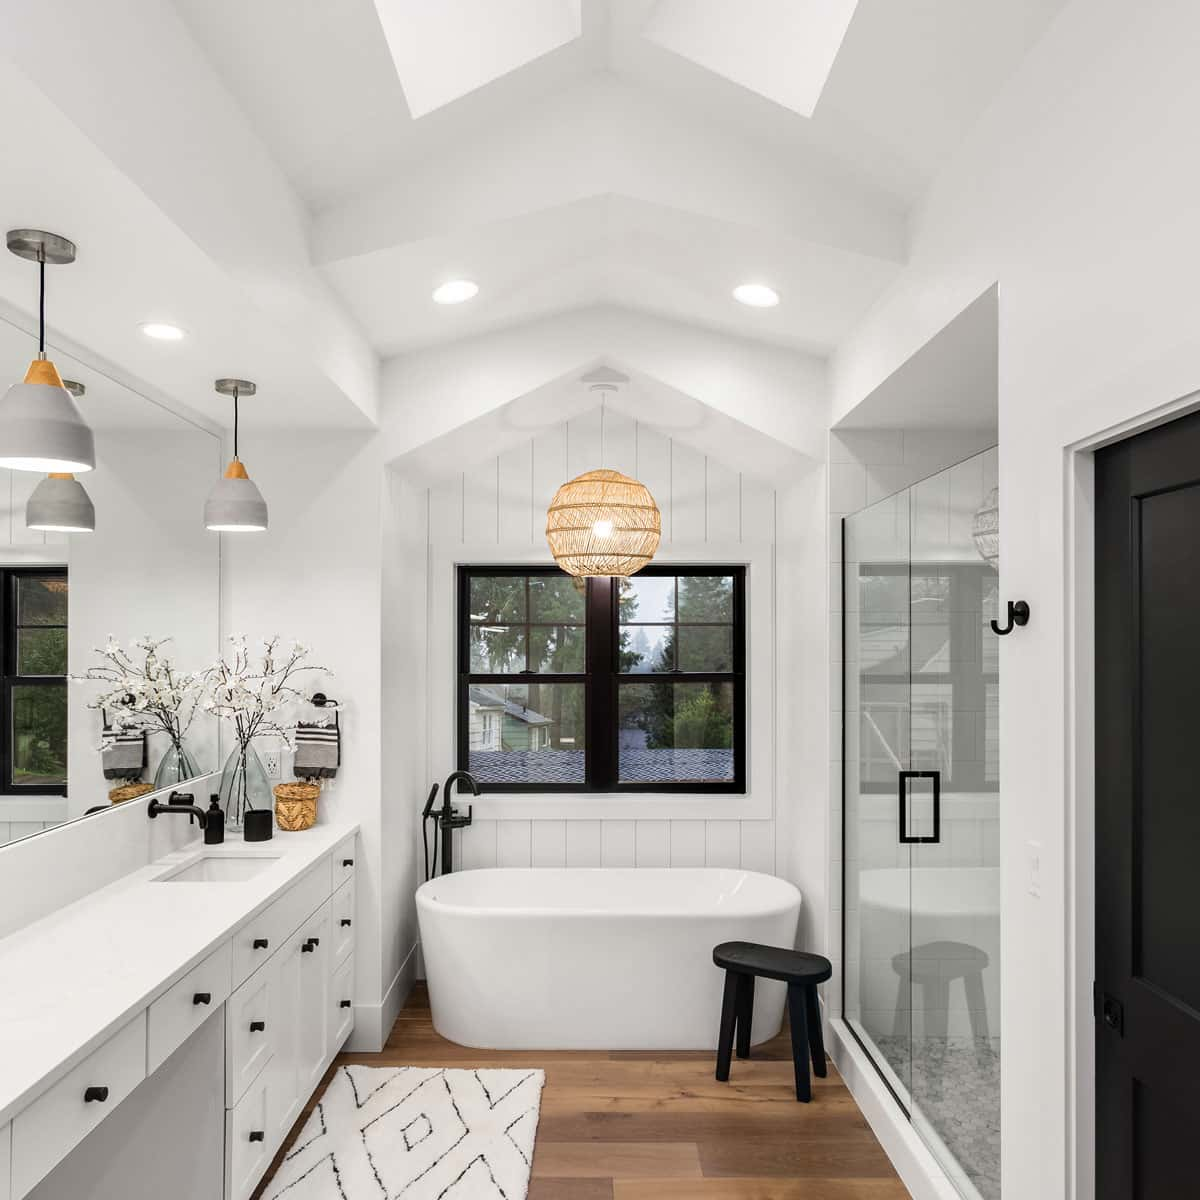 Newly renovated bathroom that increases the home value